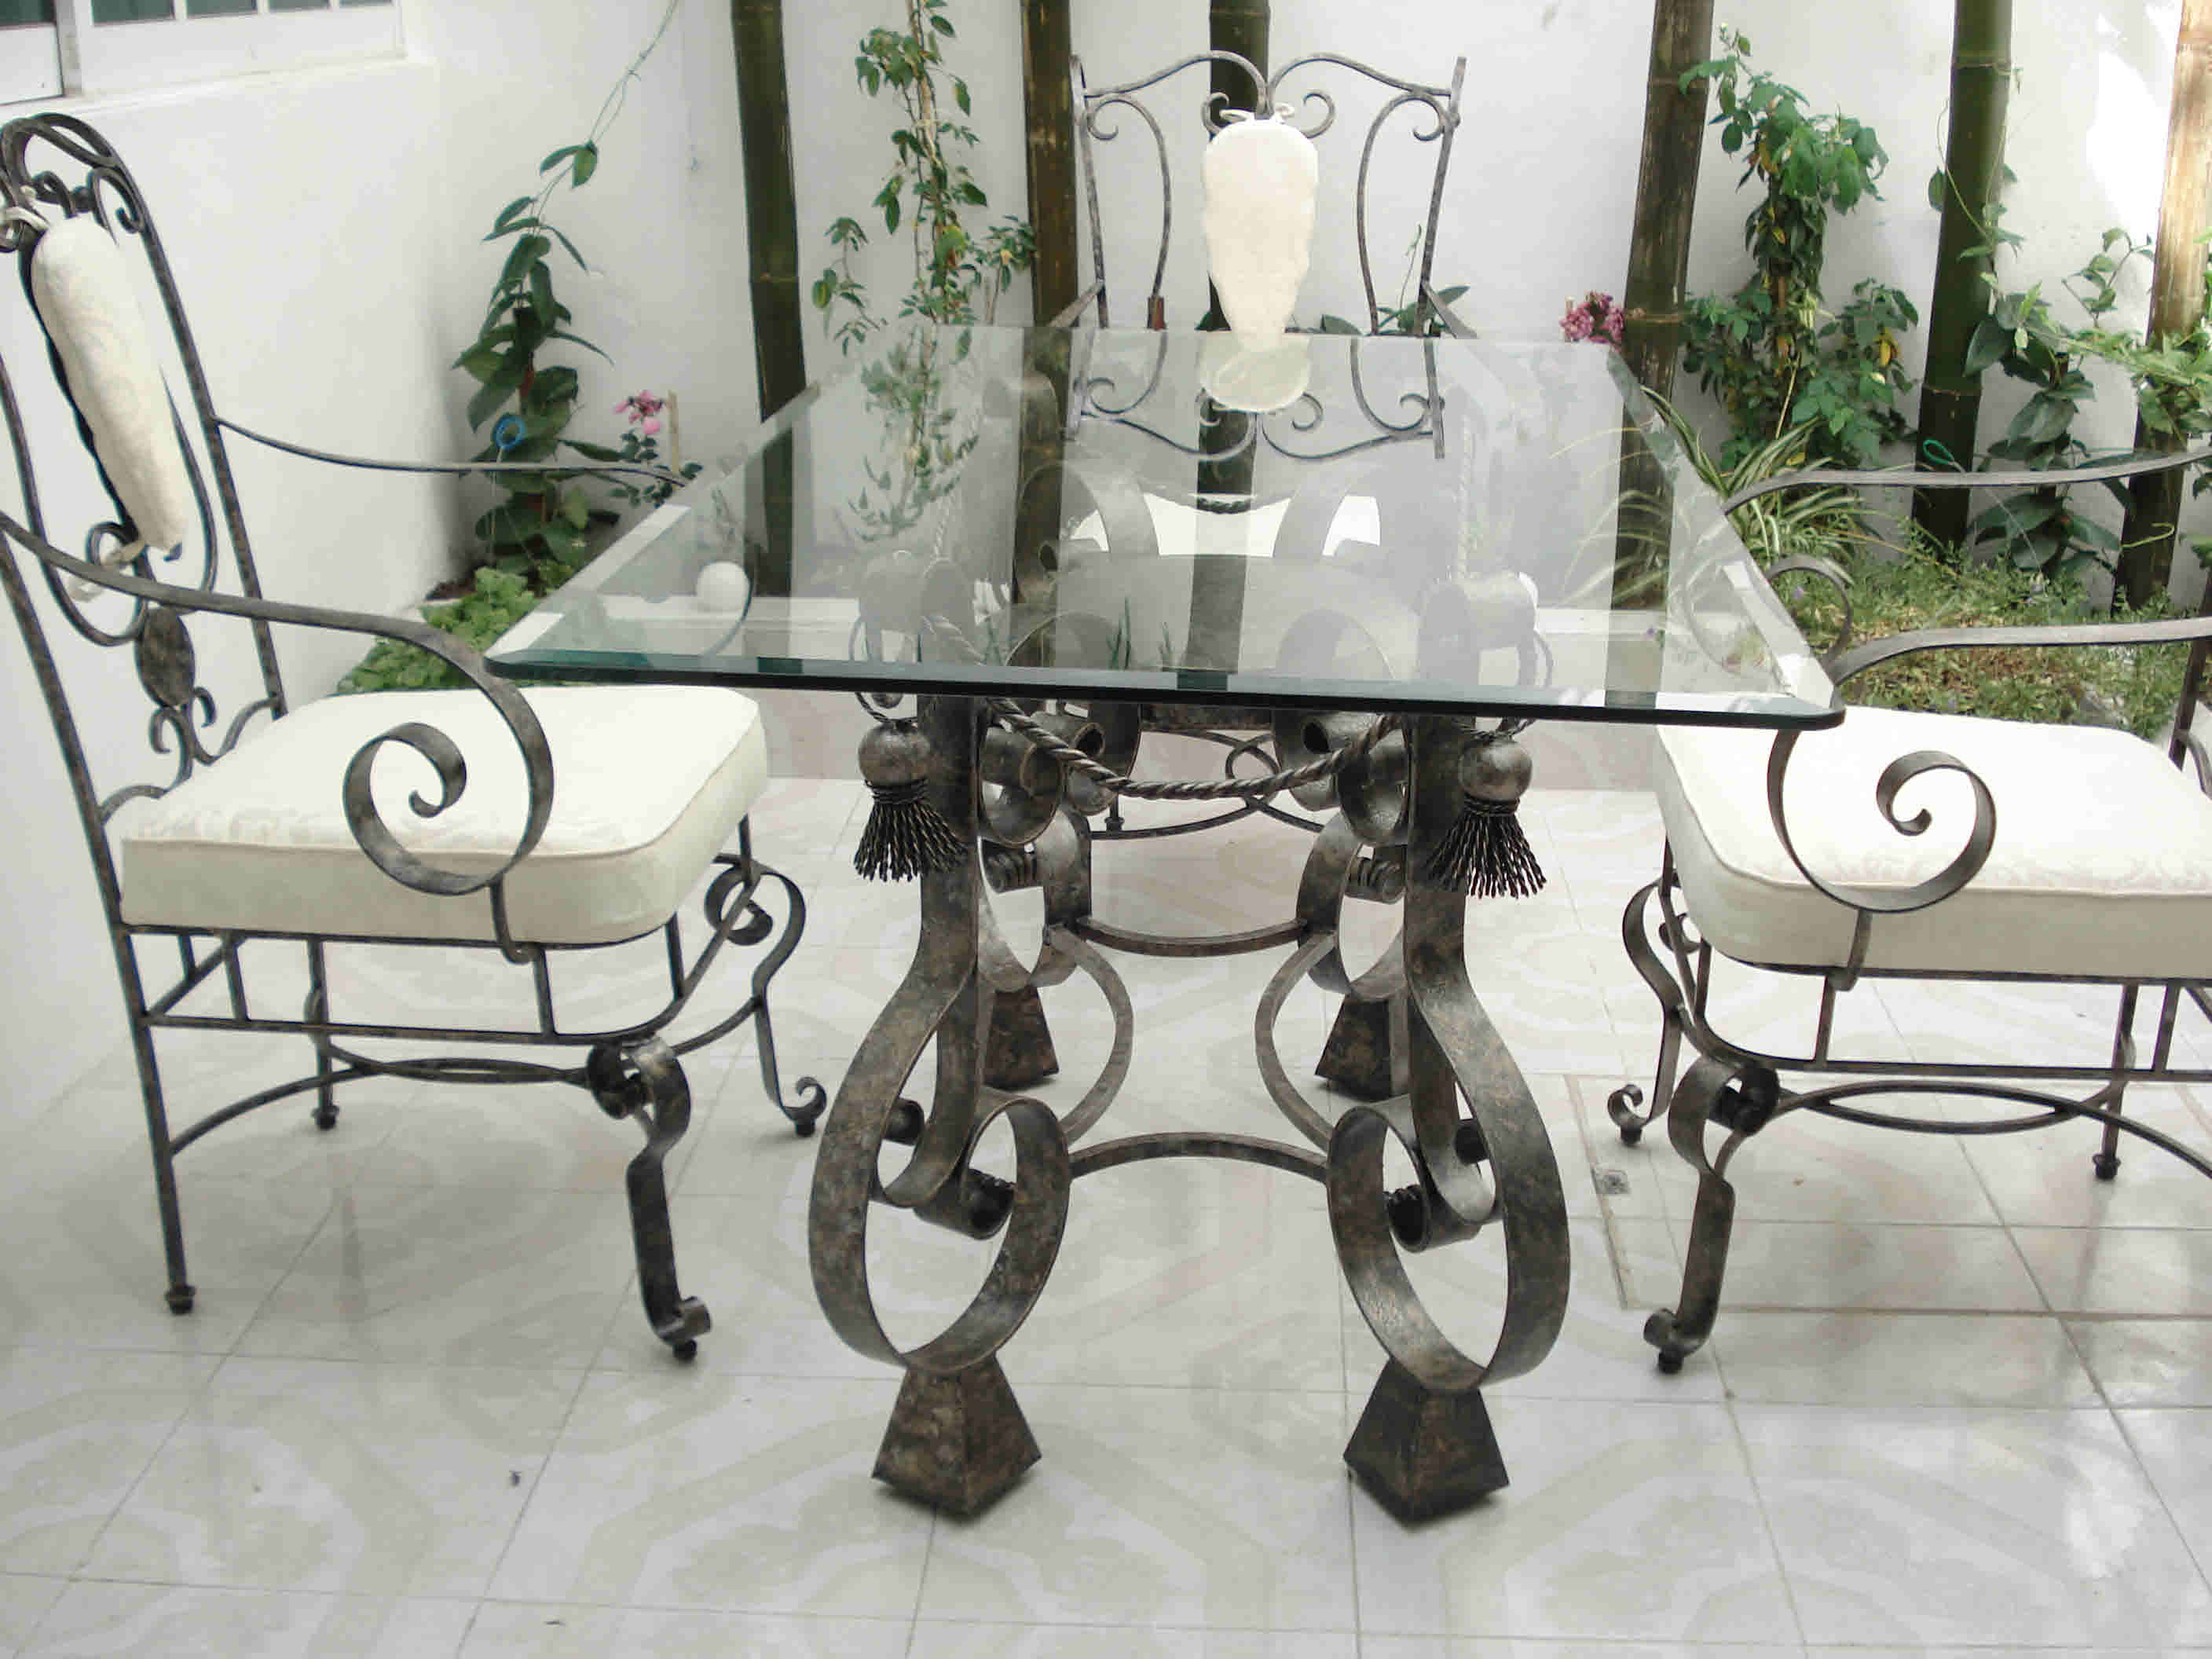 Iron And Wood Patio Furniture choosing mexican furniture for your outdoor patio, pool area or